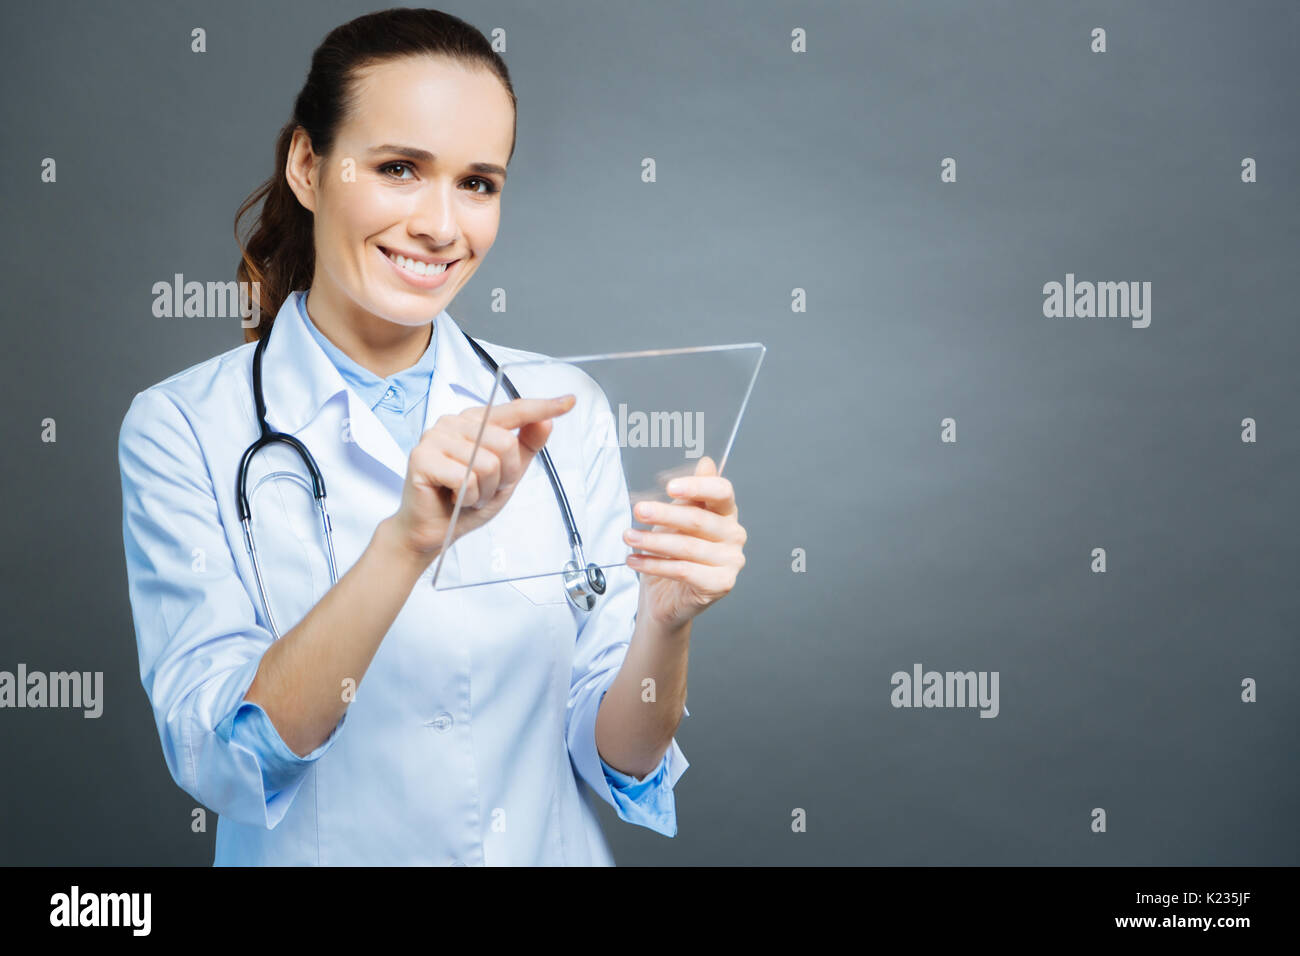 Beaming young lady in white coat posing with transparent tablet - Stock Image